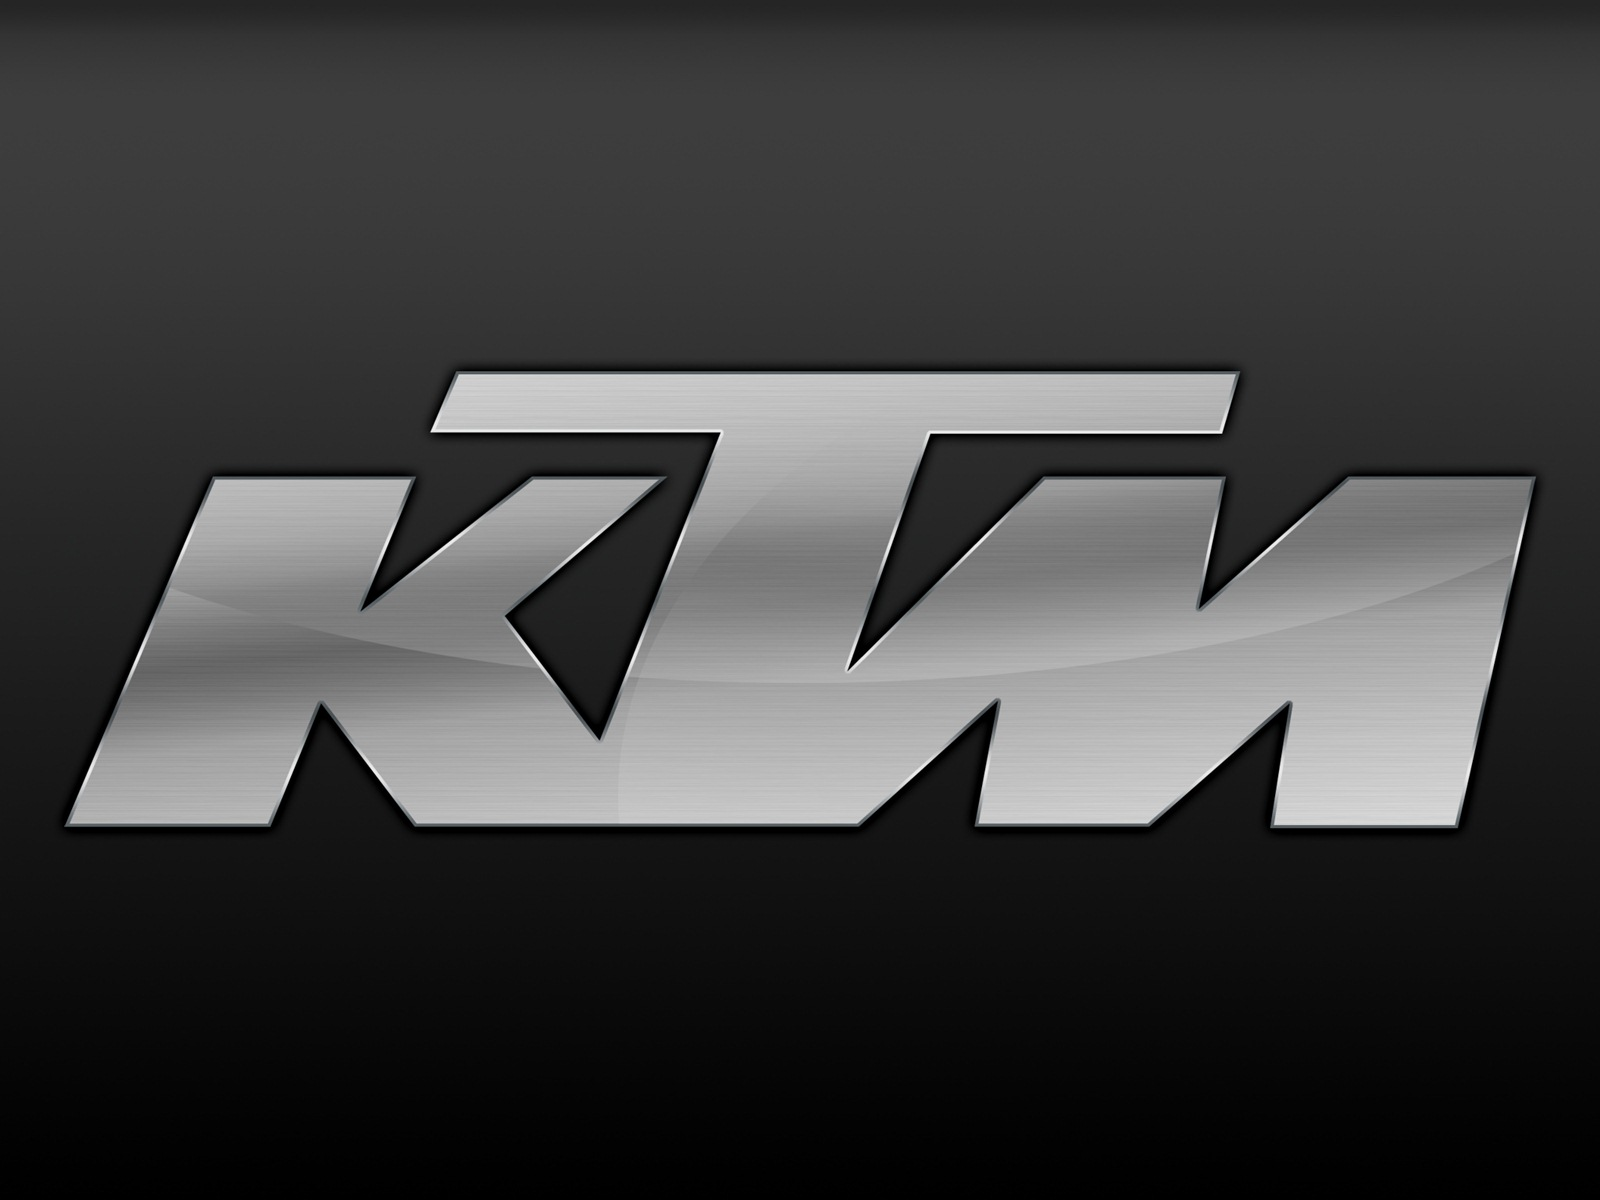 KTM Logo Wallpaper 2264 1600x1200 px High Resolution Wallpaper 1600x1200